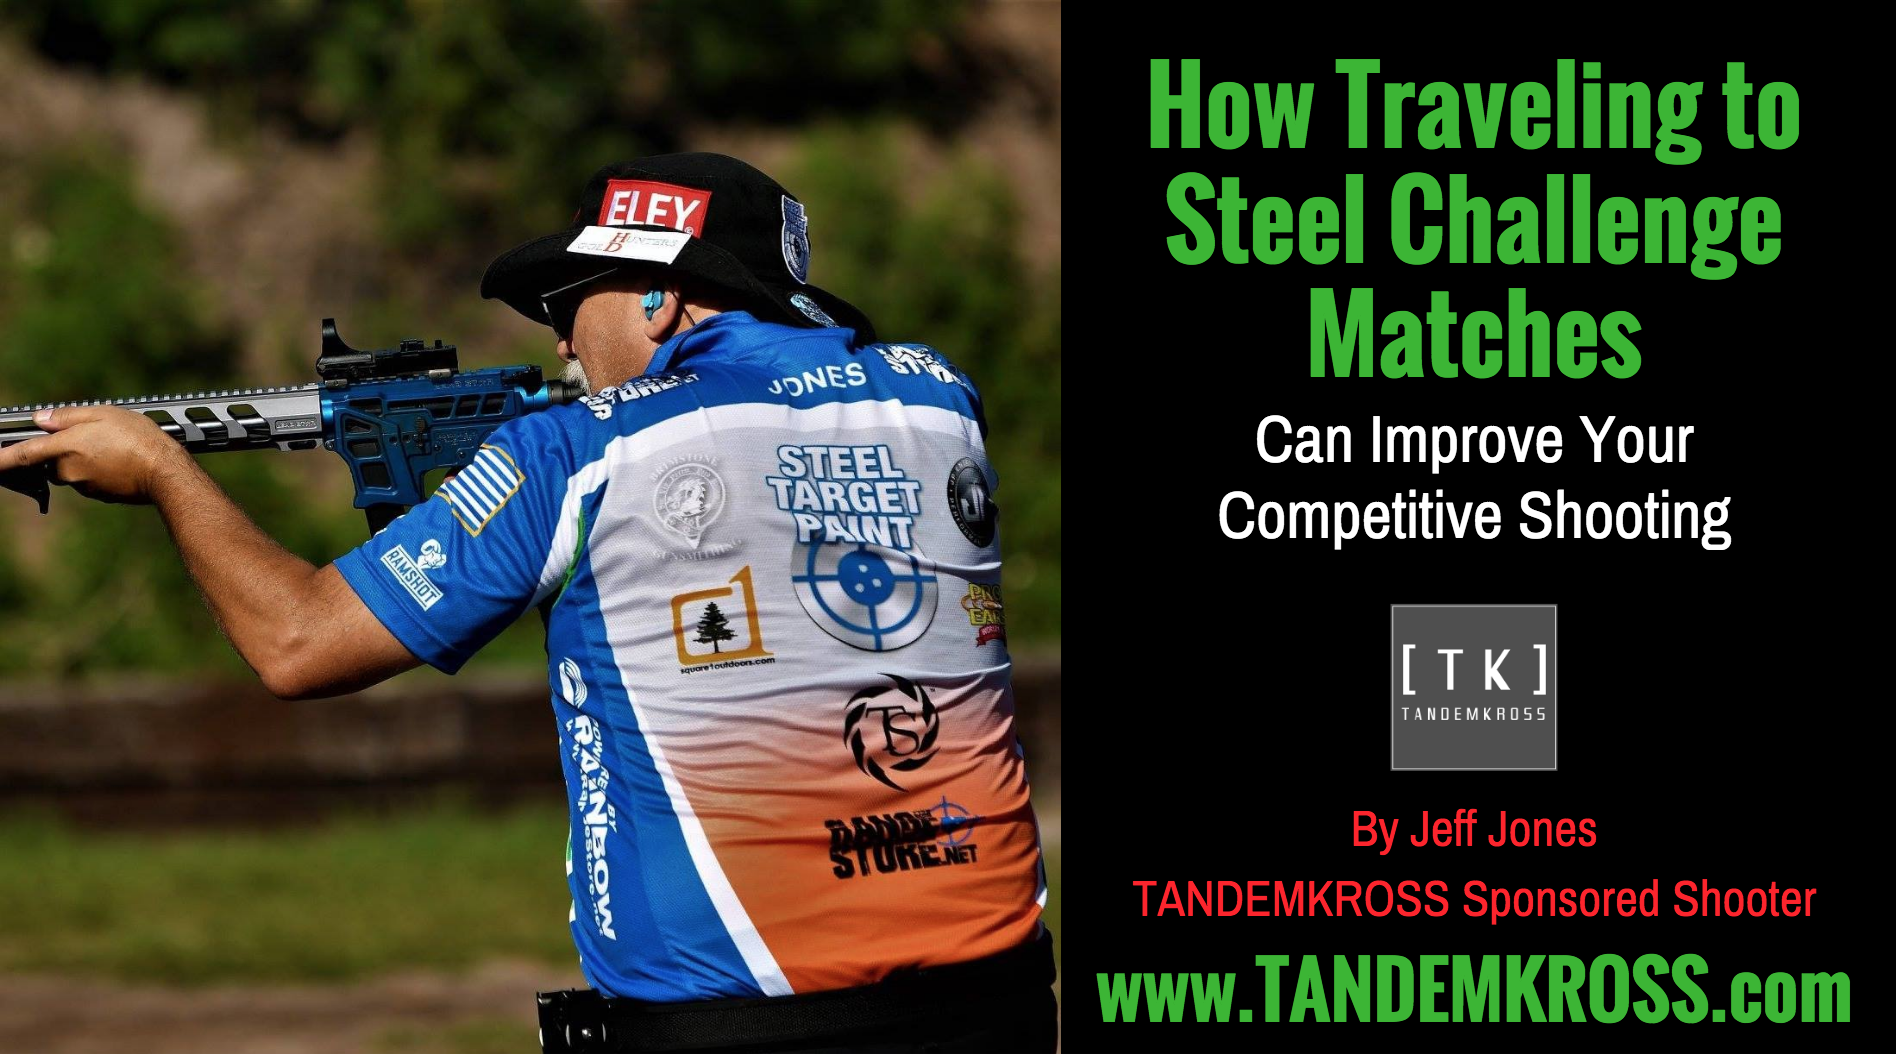 How Traveling to Steel Challenge Matches Can Improve Your Shooting